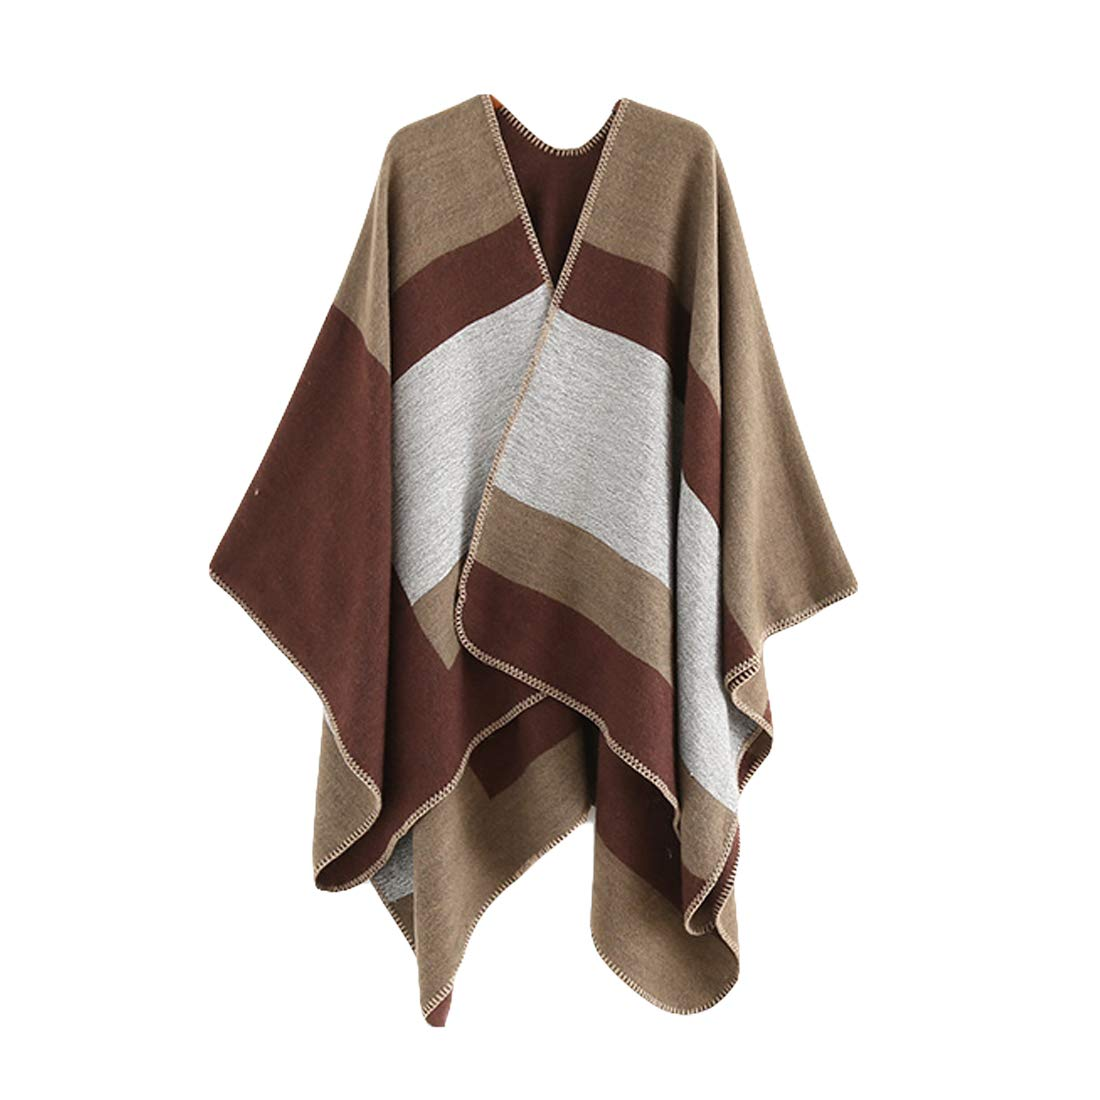 Belgius Women Shawl Wrap Color Block Blanket Scarf Open Front Poncho Capes Burgundy LY-SHAWL-A0010-WR